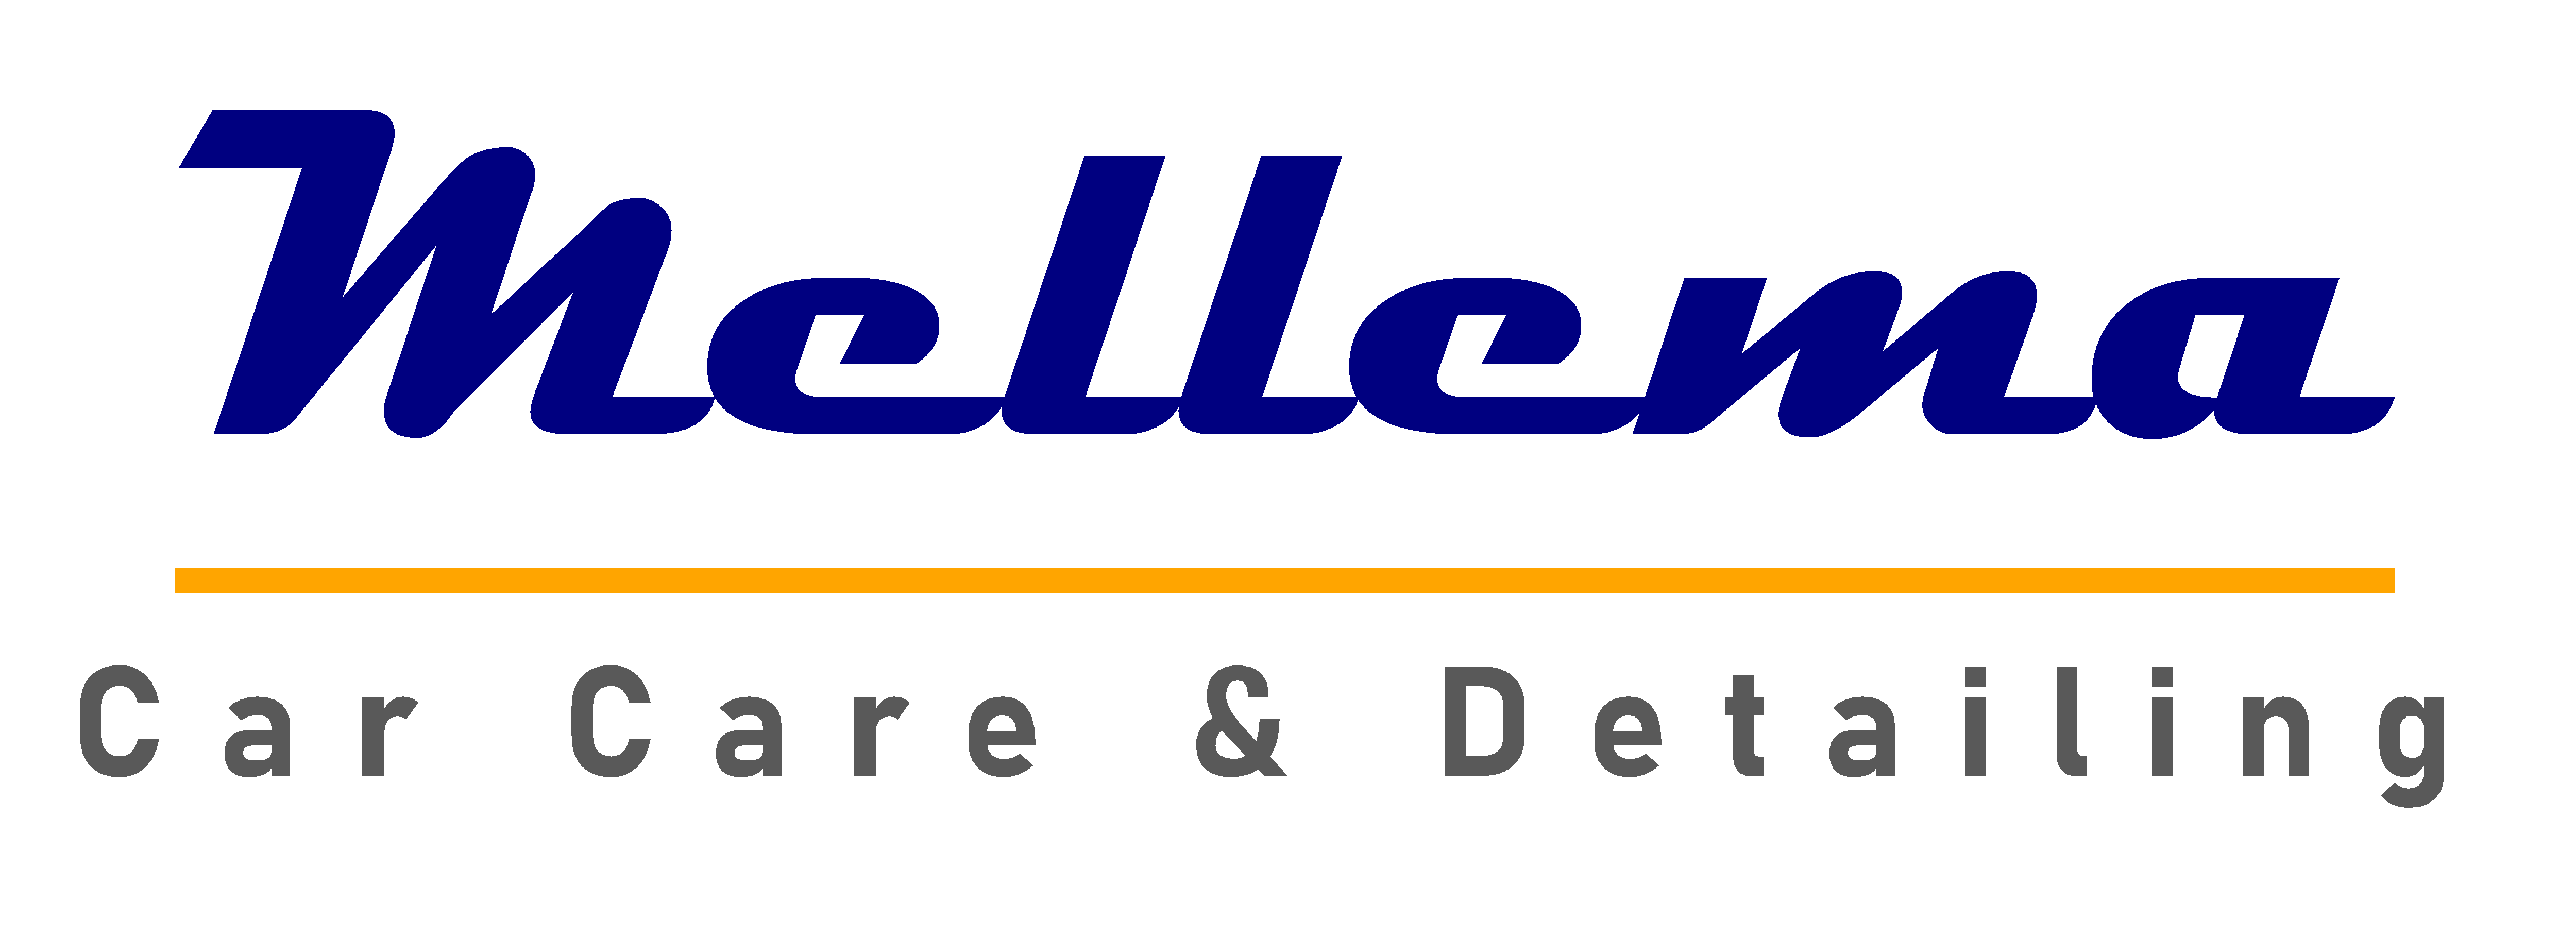 Mellema Car Cleaning & Detailing